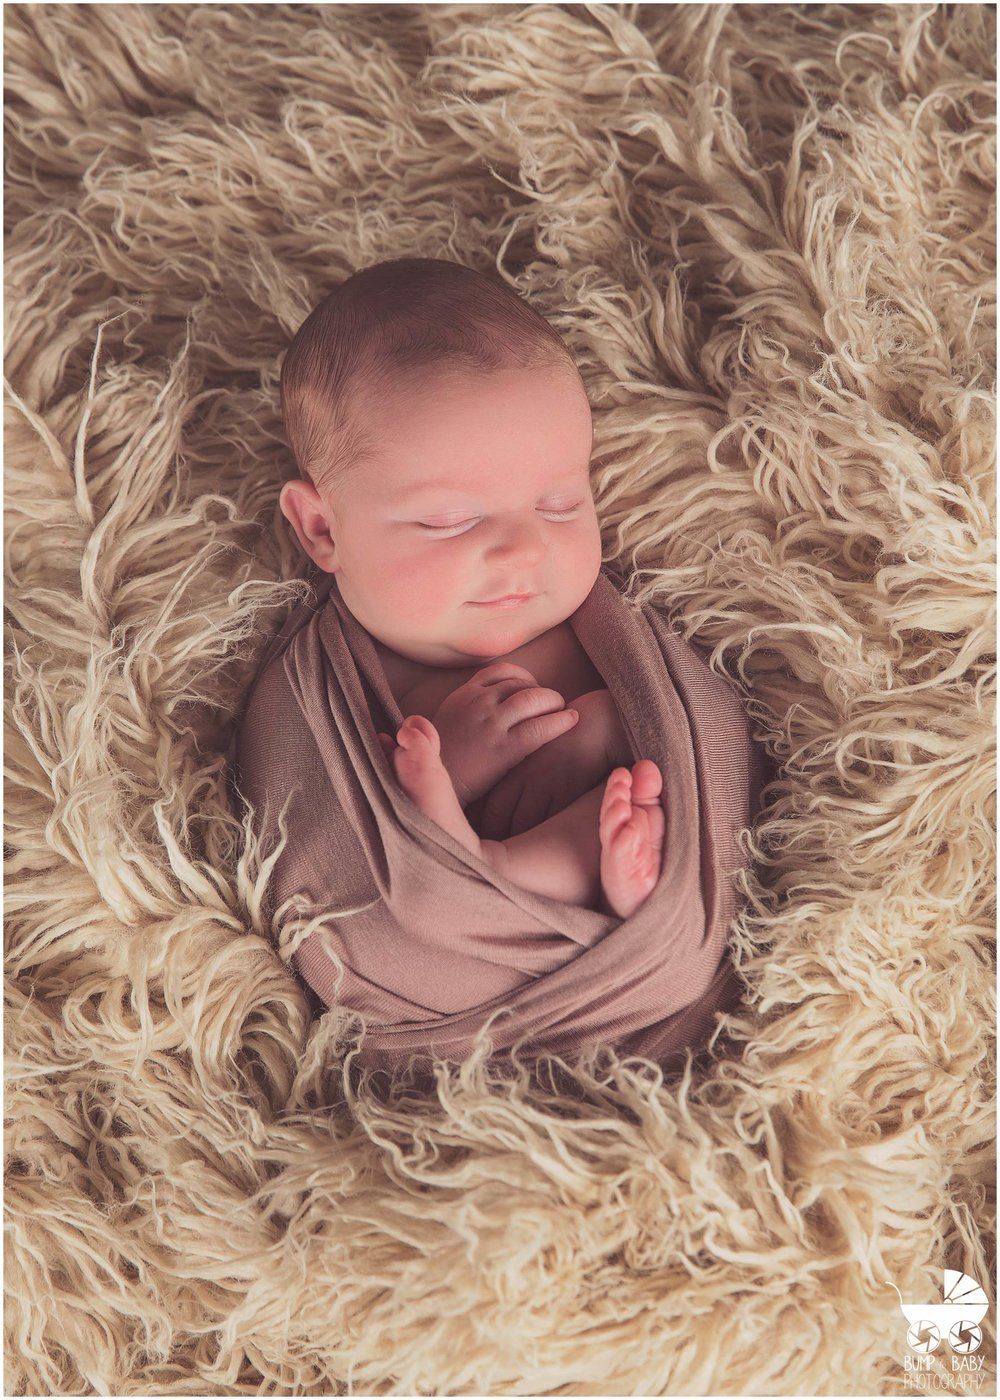 Newborn-Baby-Girl-Neutral-Colors-Wrapped-on-Fur.jpg